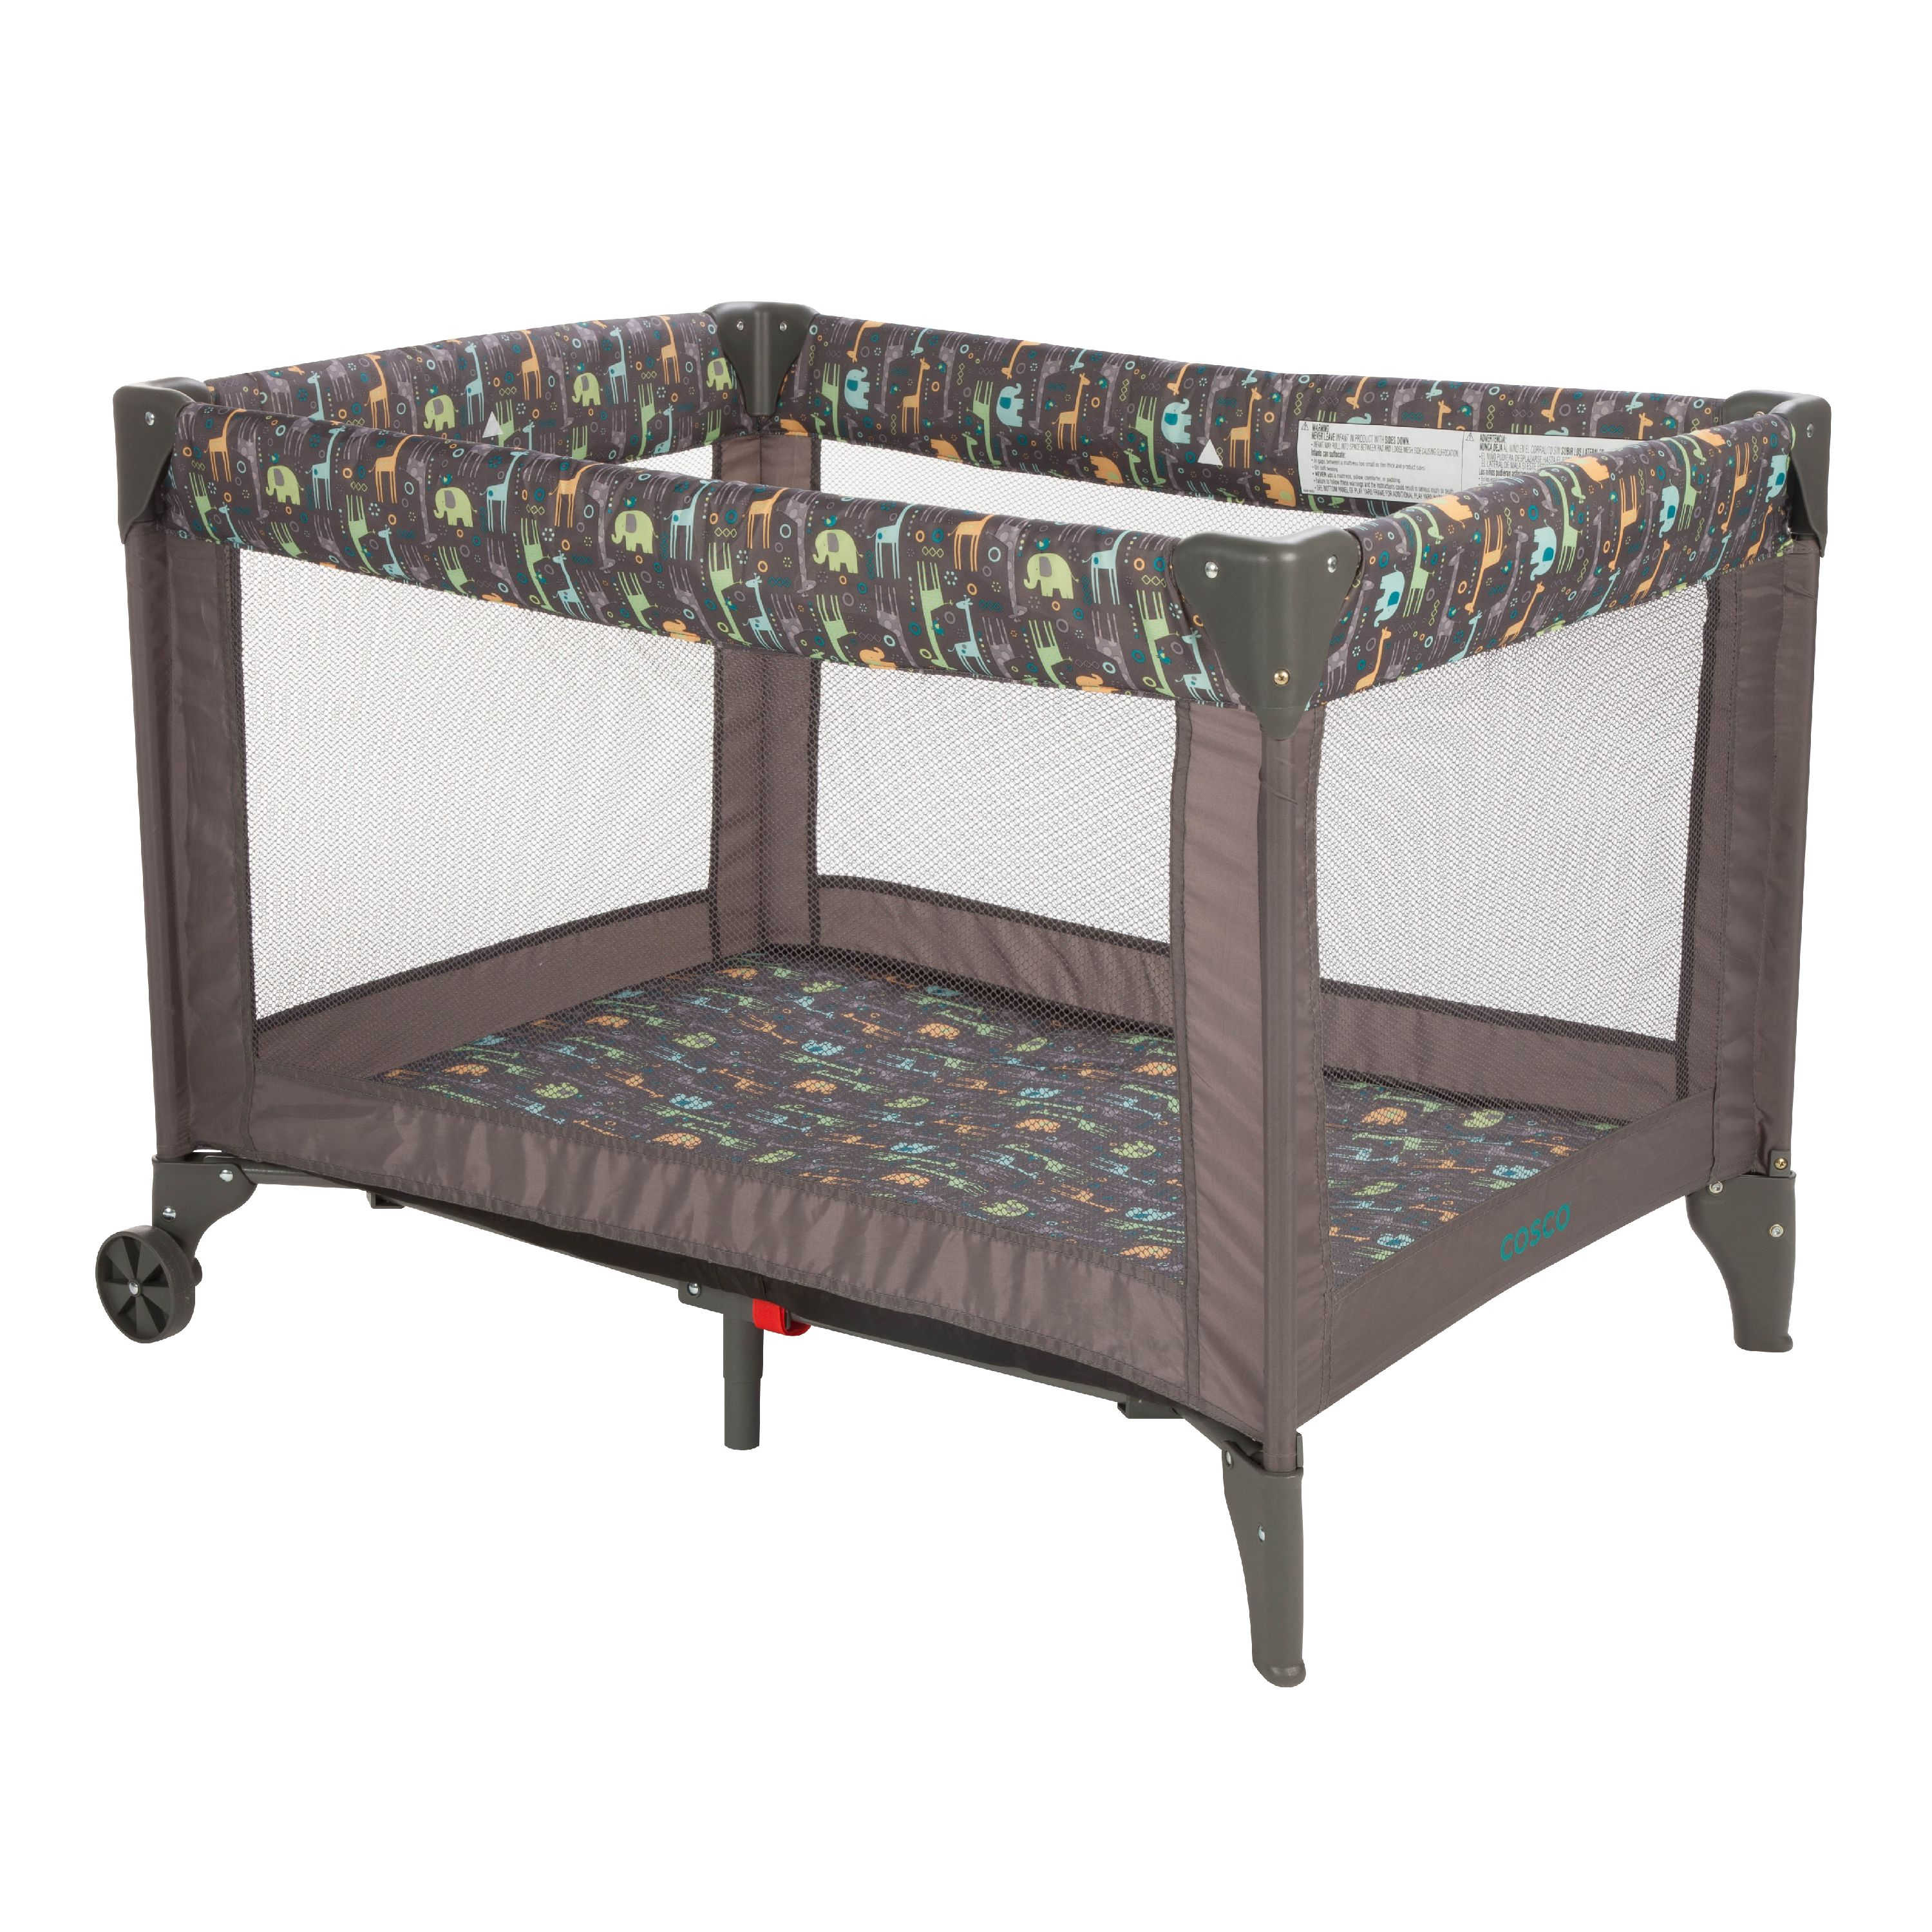 Cosco Funsport® Portable Compact Baby Play Yard, Zuri